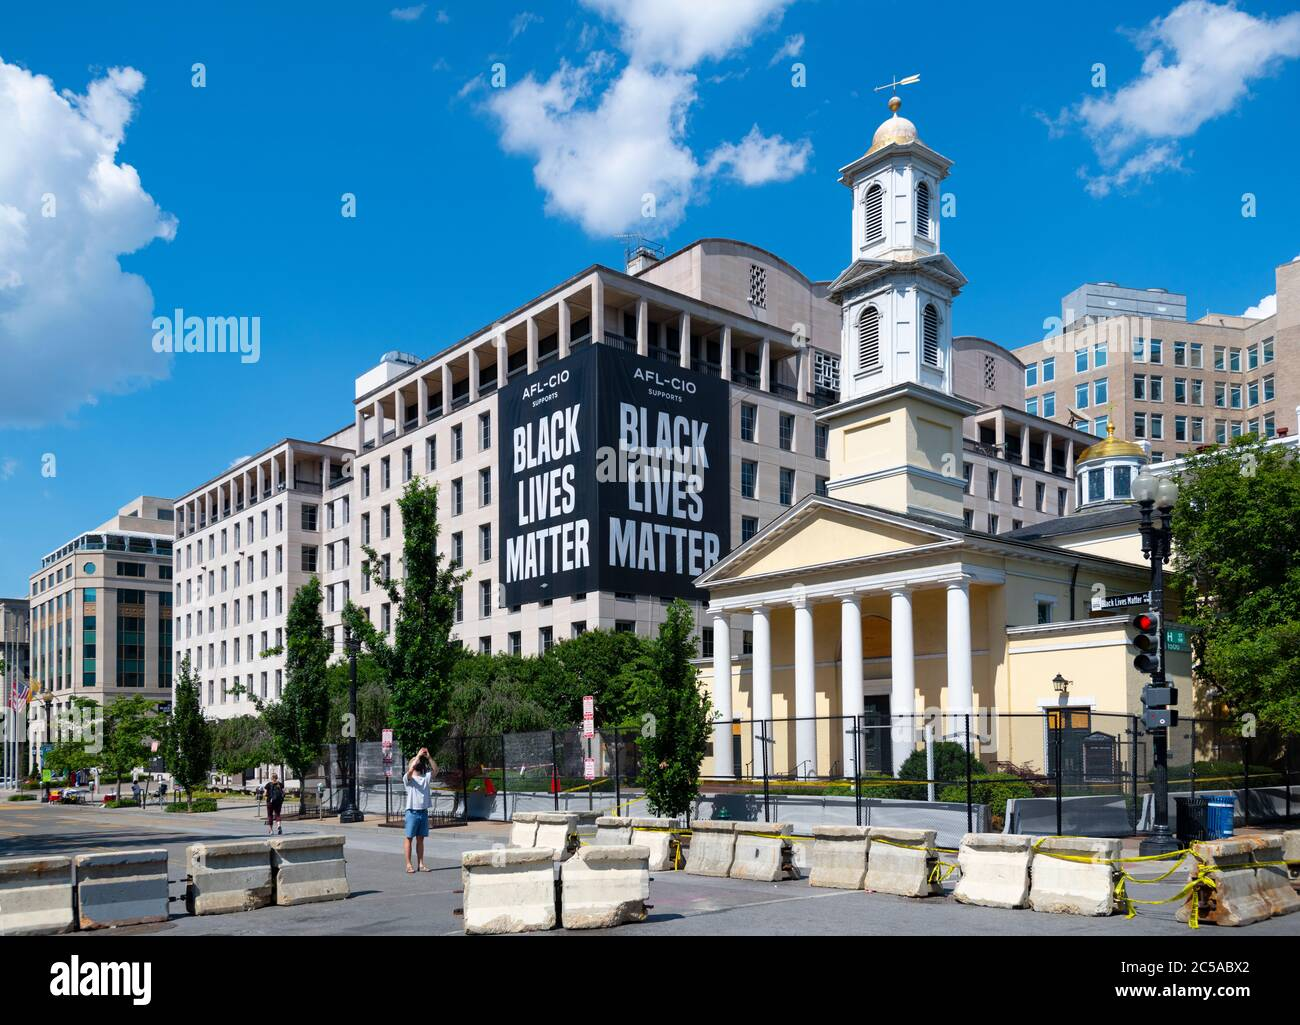 usa-washington-dc-black-lives-matter-plaza-with-st-johns-episcopal-church-fenced-in-next-to-the-afl-cio-2C5ABX2.jpg